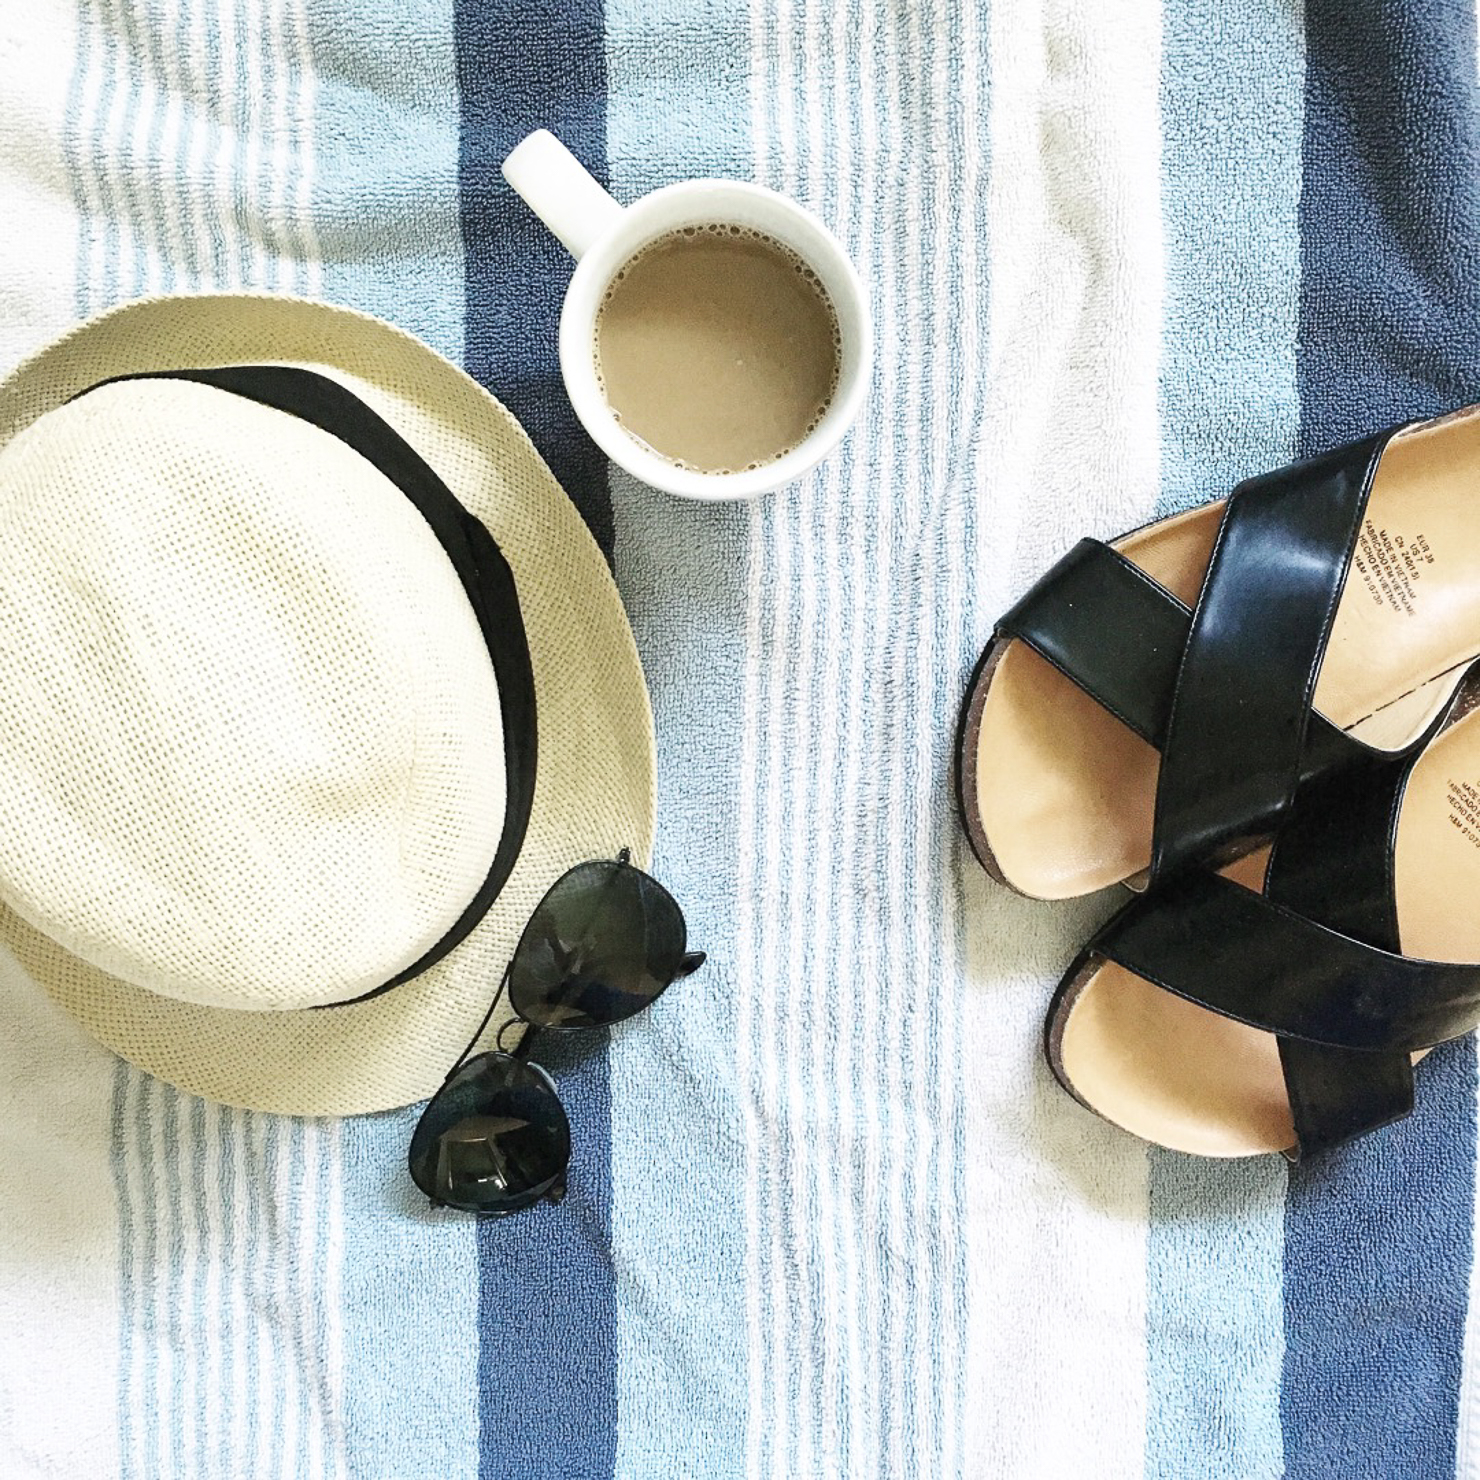 coffee-at-the-beach-hat-and-sunglasses-on-beach-towel-